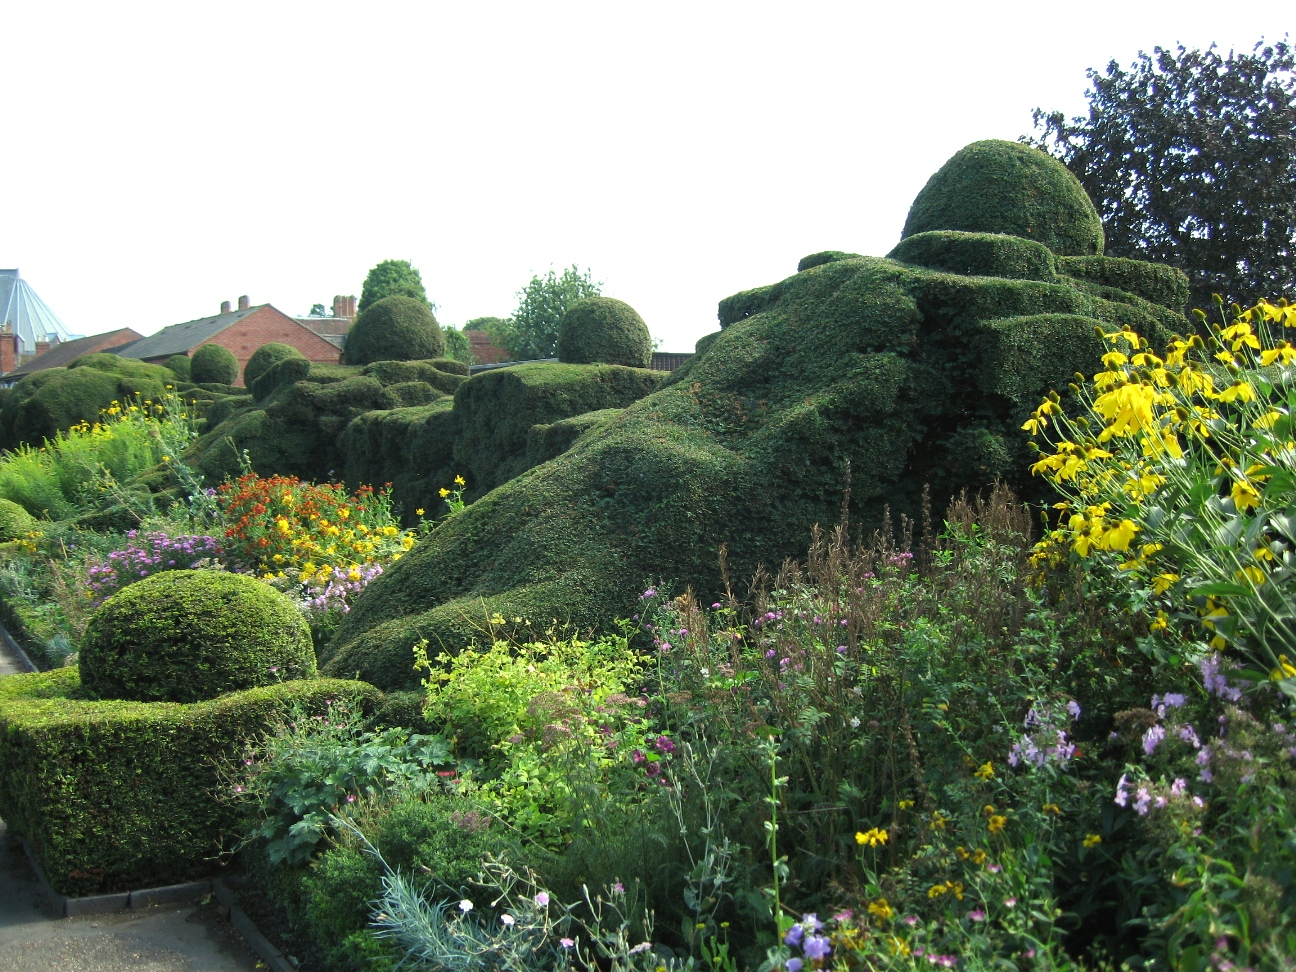 Great_Garden,_New_Place,_Stratford-upon-Avon.jpg